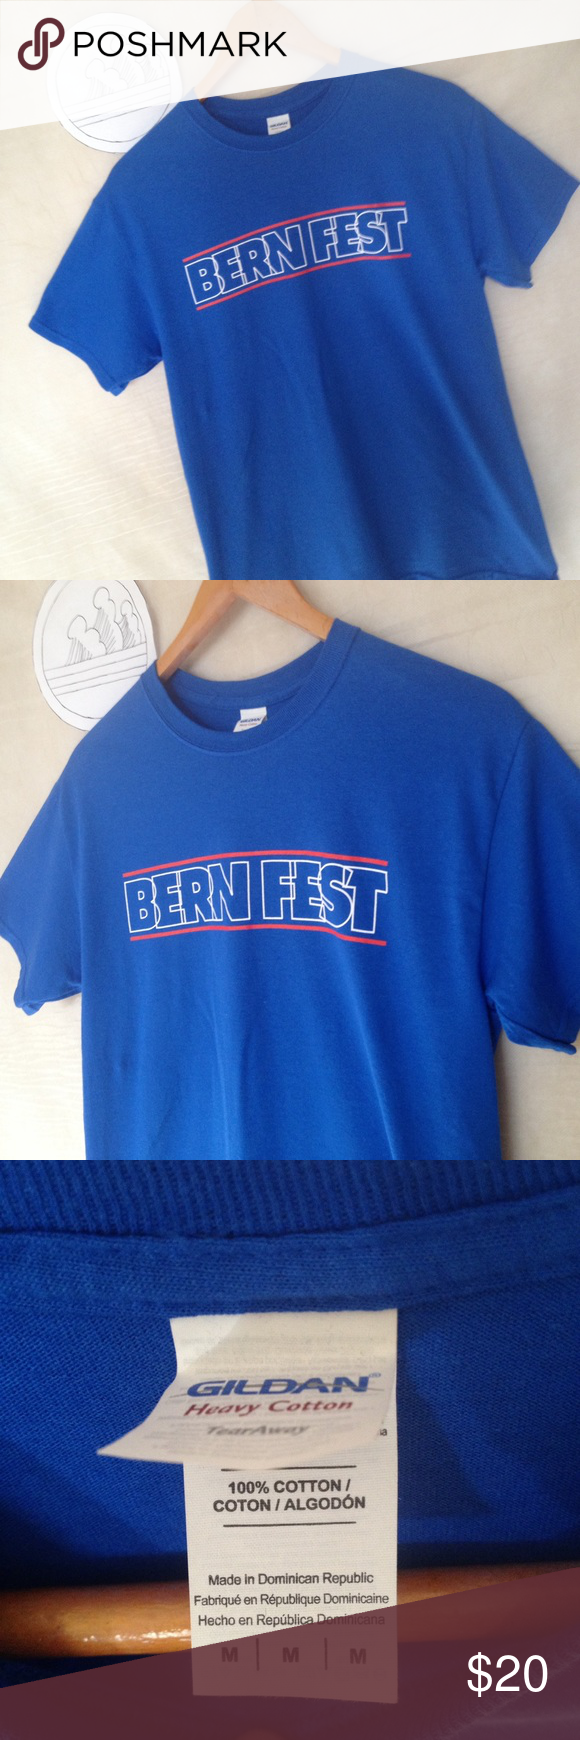 Bern fest Chicago Bernie sanders shirt size M Used shirt with no holes, rips or tears from smoke free environment, thank you.  SKU 112916.001.00Y Gildan Shirts Tees - Short Sleeve